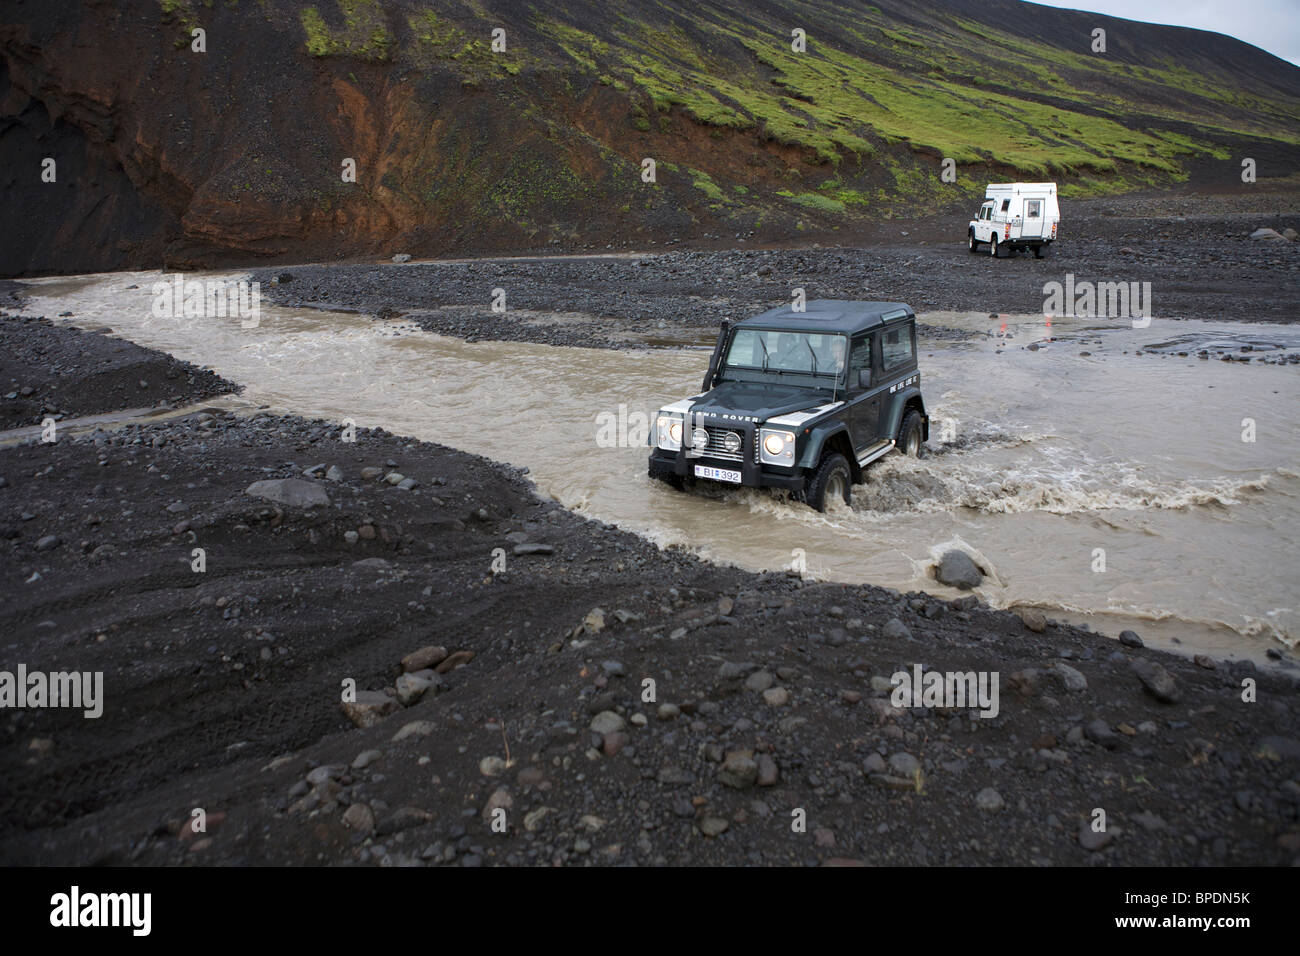 2 Land Rovers fording a river in the interior Highlands of Iceland. Defender 90 and a Defender 130 with a camper - Stock Image